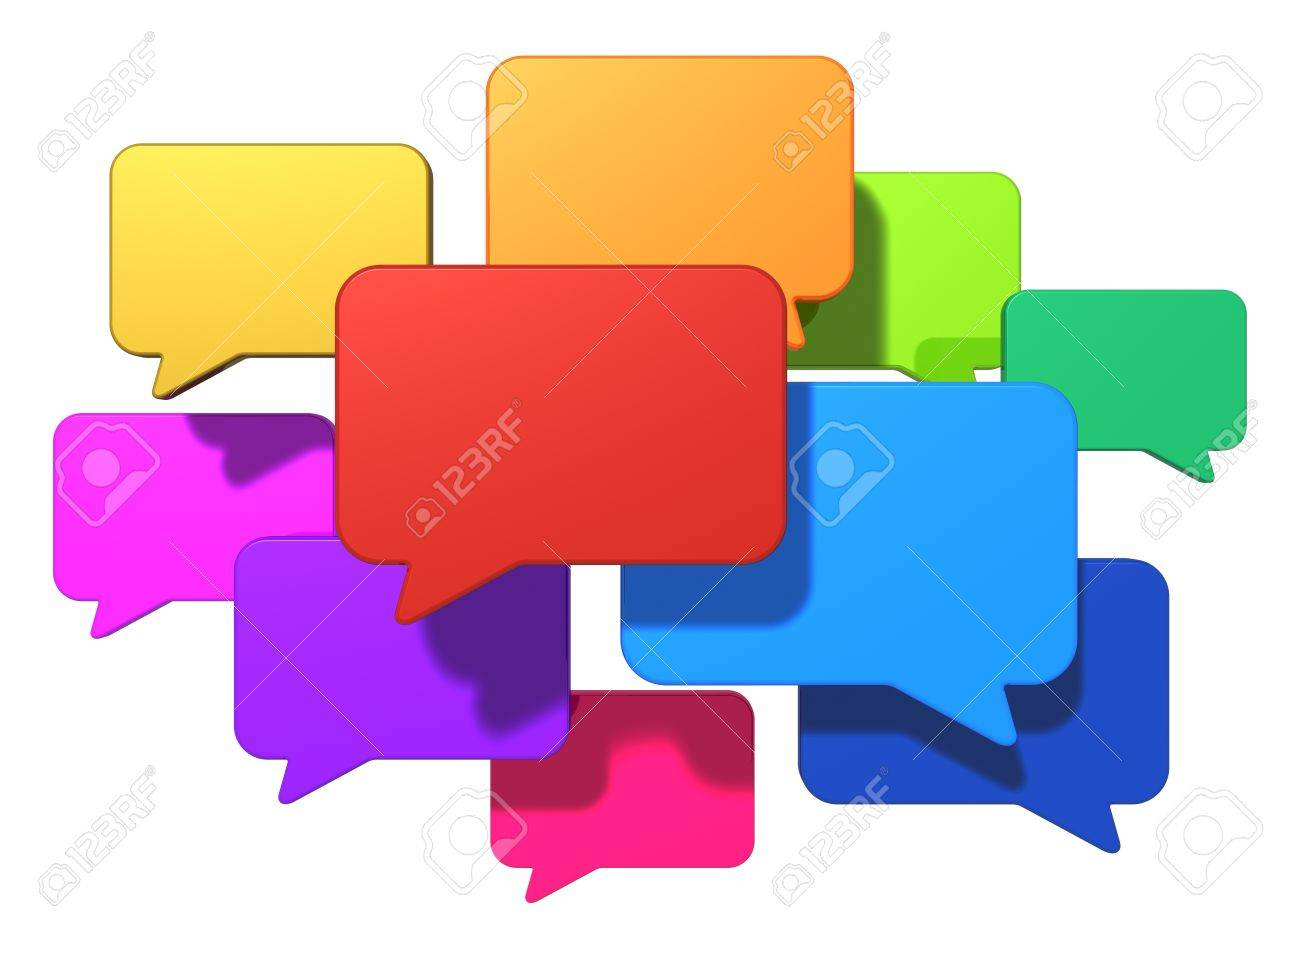 Creative social networking media, web chat, online messaging and internet communication concept group of glossy colorful speech bubbles or balloons isolated on white background - 20664289